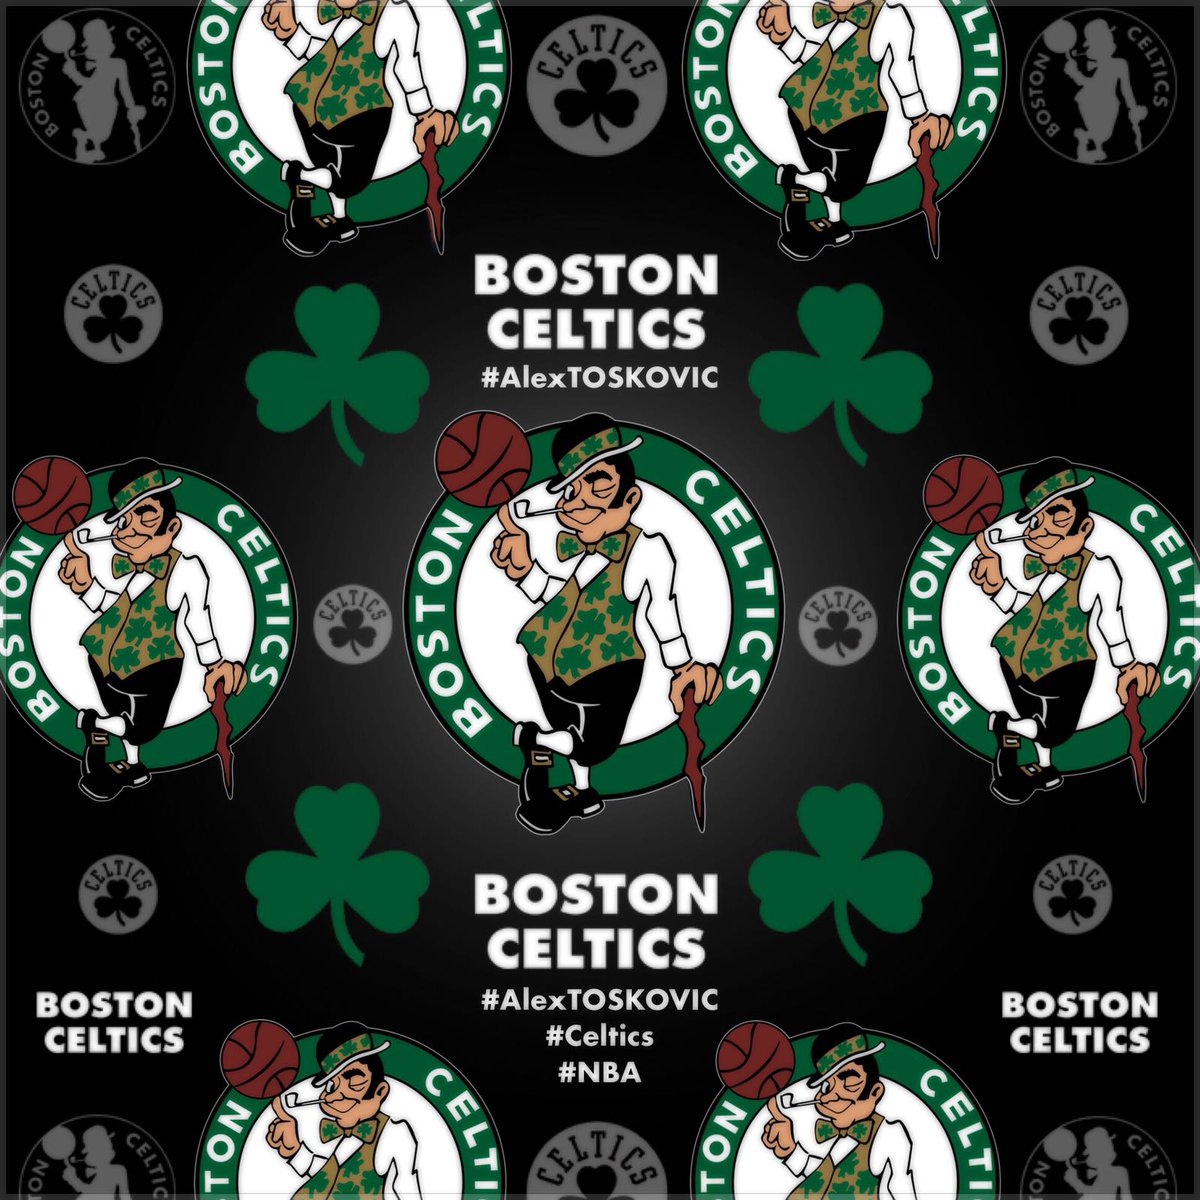 Very important game coming up for the @celtics tonight, we face @chicagobulls Let's focus, let's bounce back! #Celtics #CUsRise #CelticsWin #GOCeltics #BostonCeltics #NBA #NBATwitter #AlexTOSKOVIC